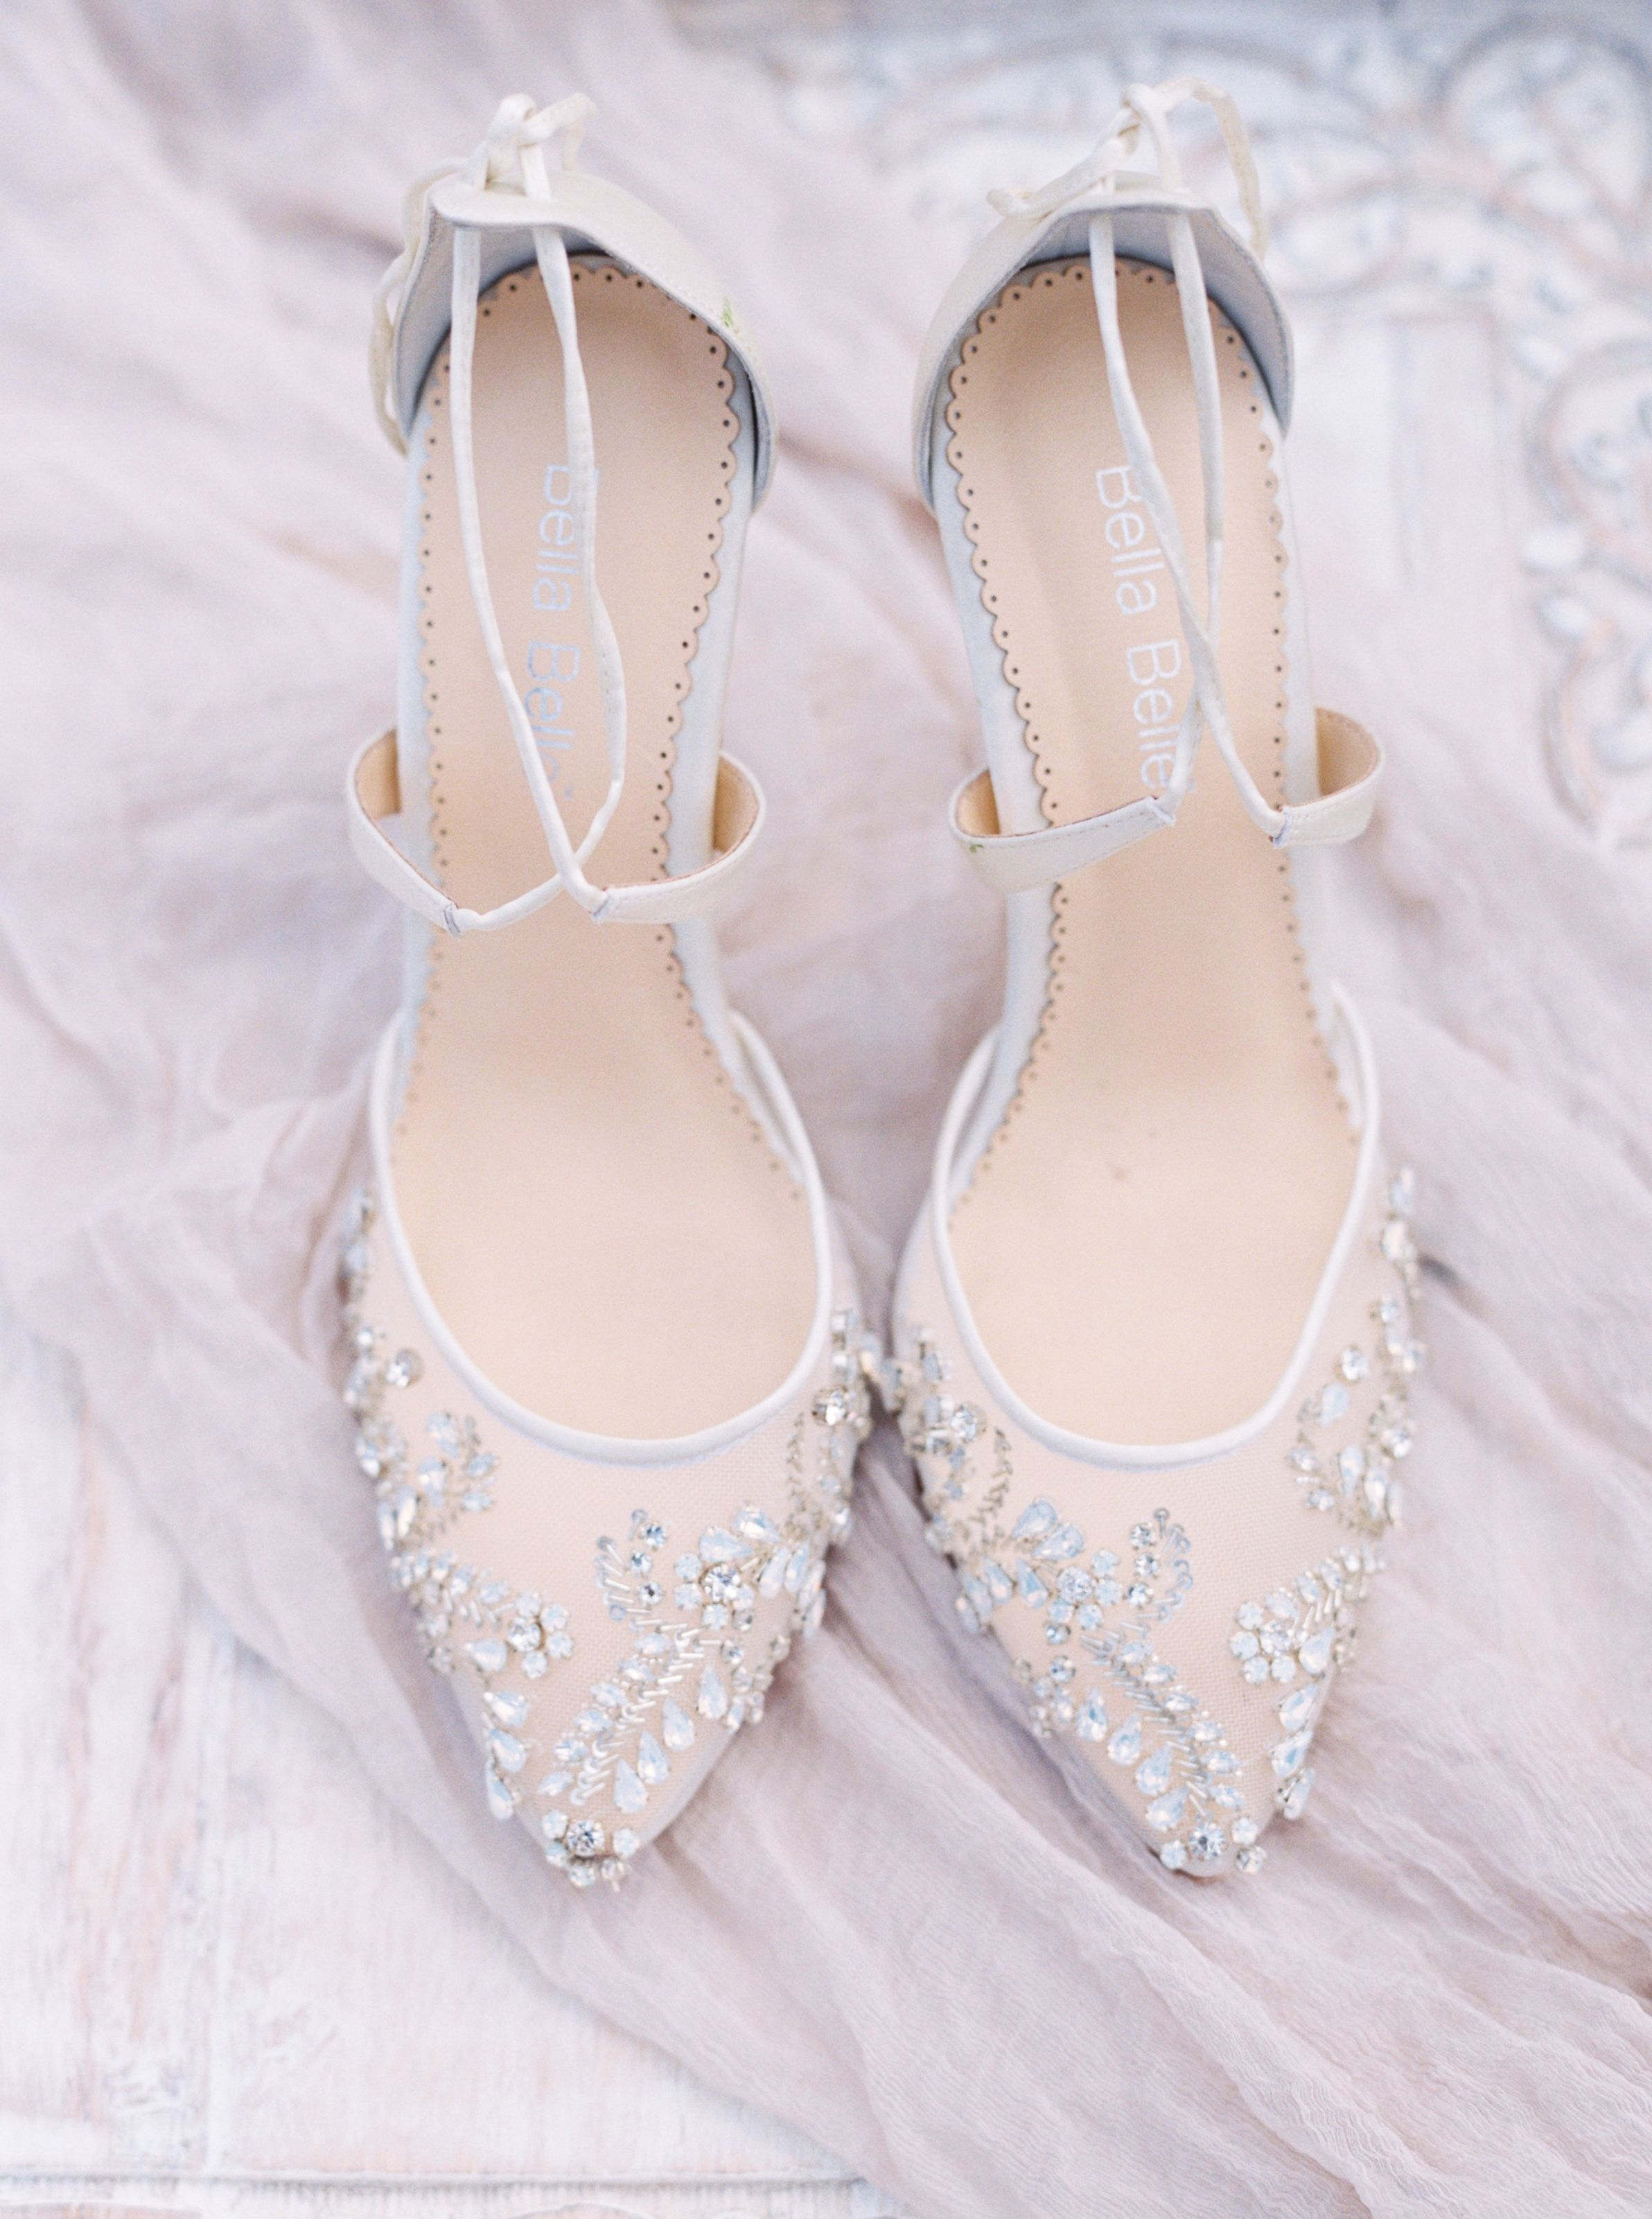 6ef6f7e788c0 Florence wedding heel with cross ankle strap and beautiful jewels by Bella  Belle Photographer  Jenna Mcelroy